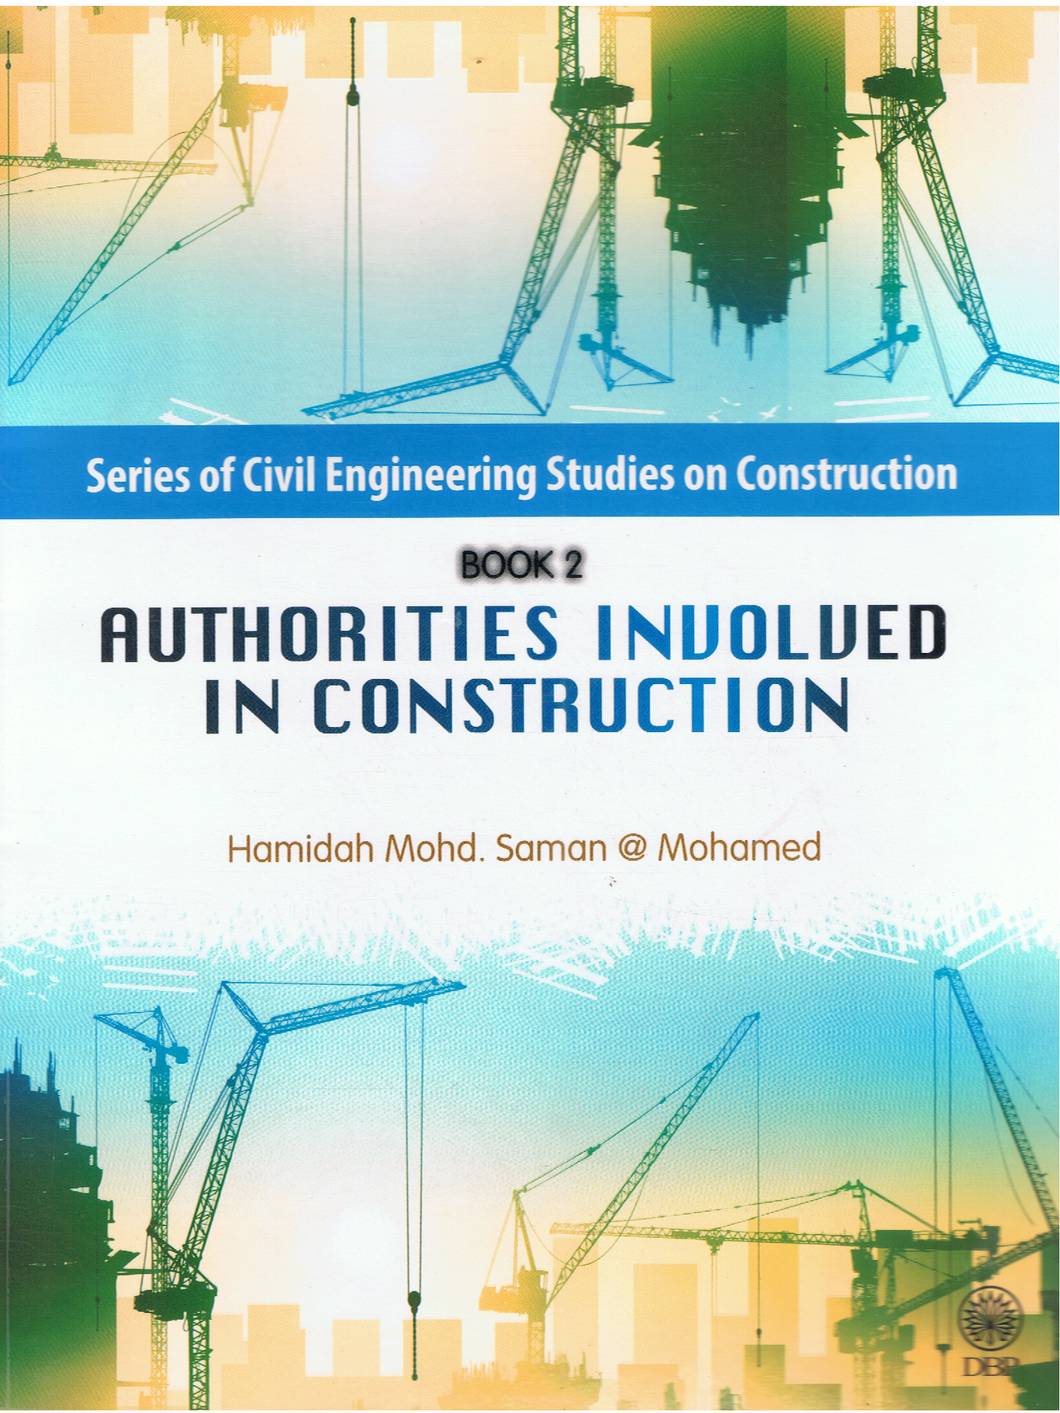 DBP: Series Of Civil Engineering Studies On Construction Book 2: Authorities Involved In Construction